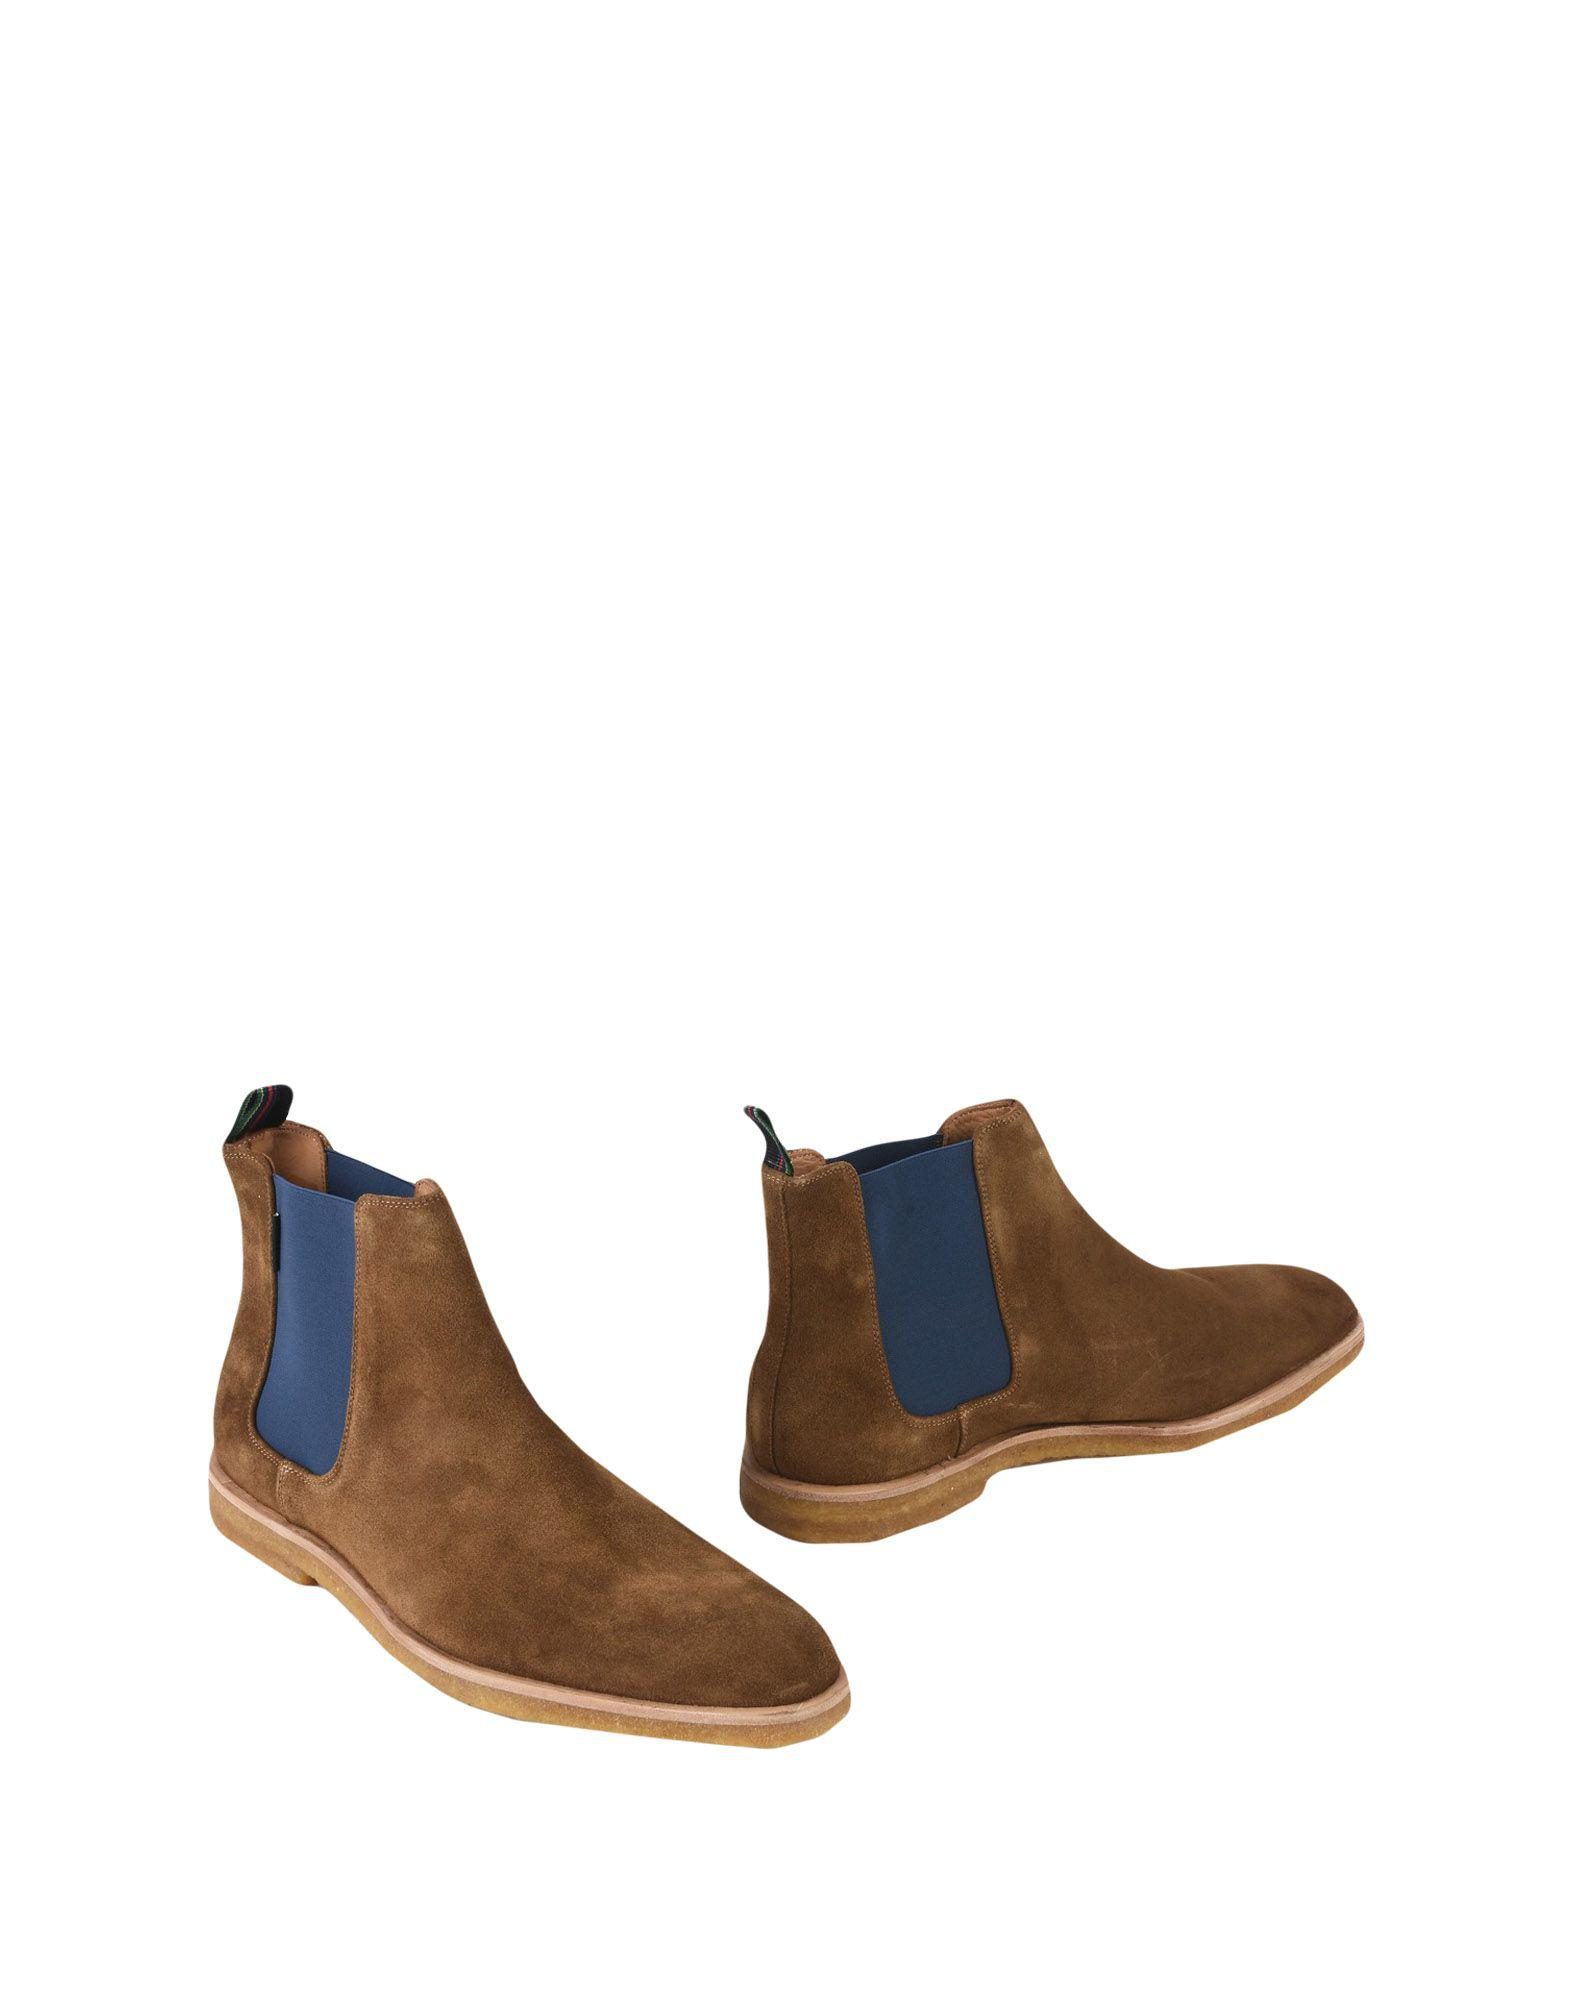 9dc7432c4b2 Ps By Paul Smith Ankle Boots in Brown for Men - Lyst